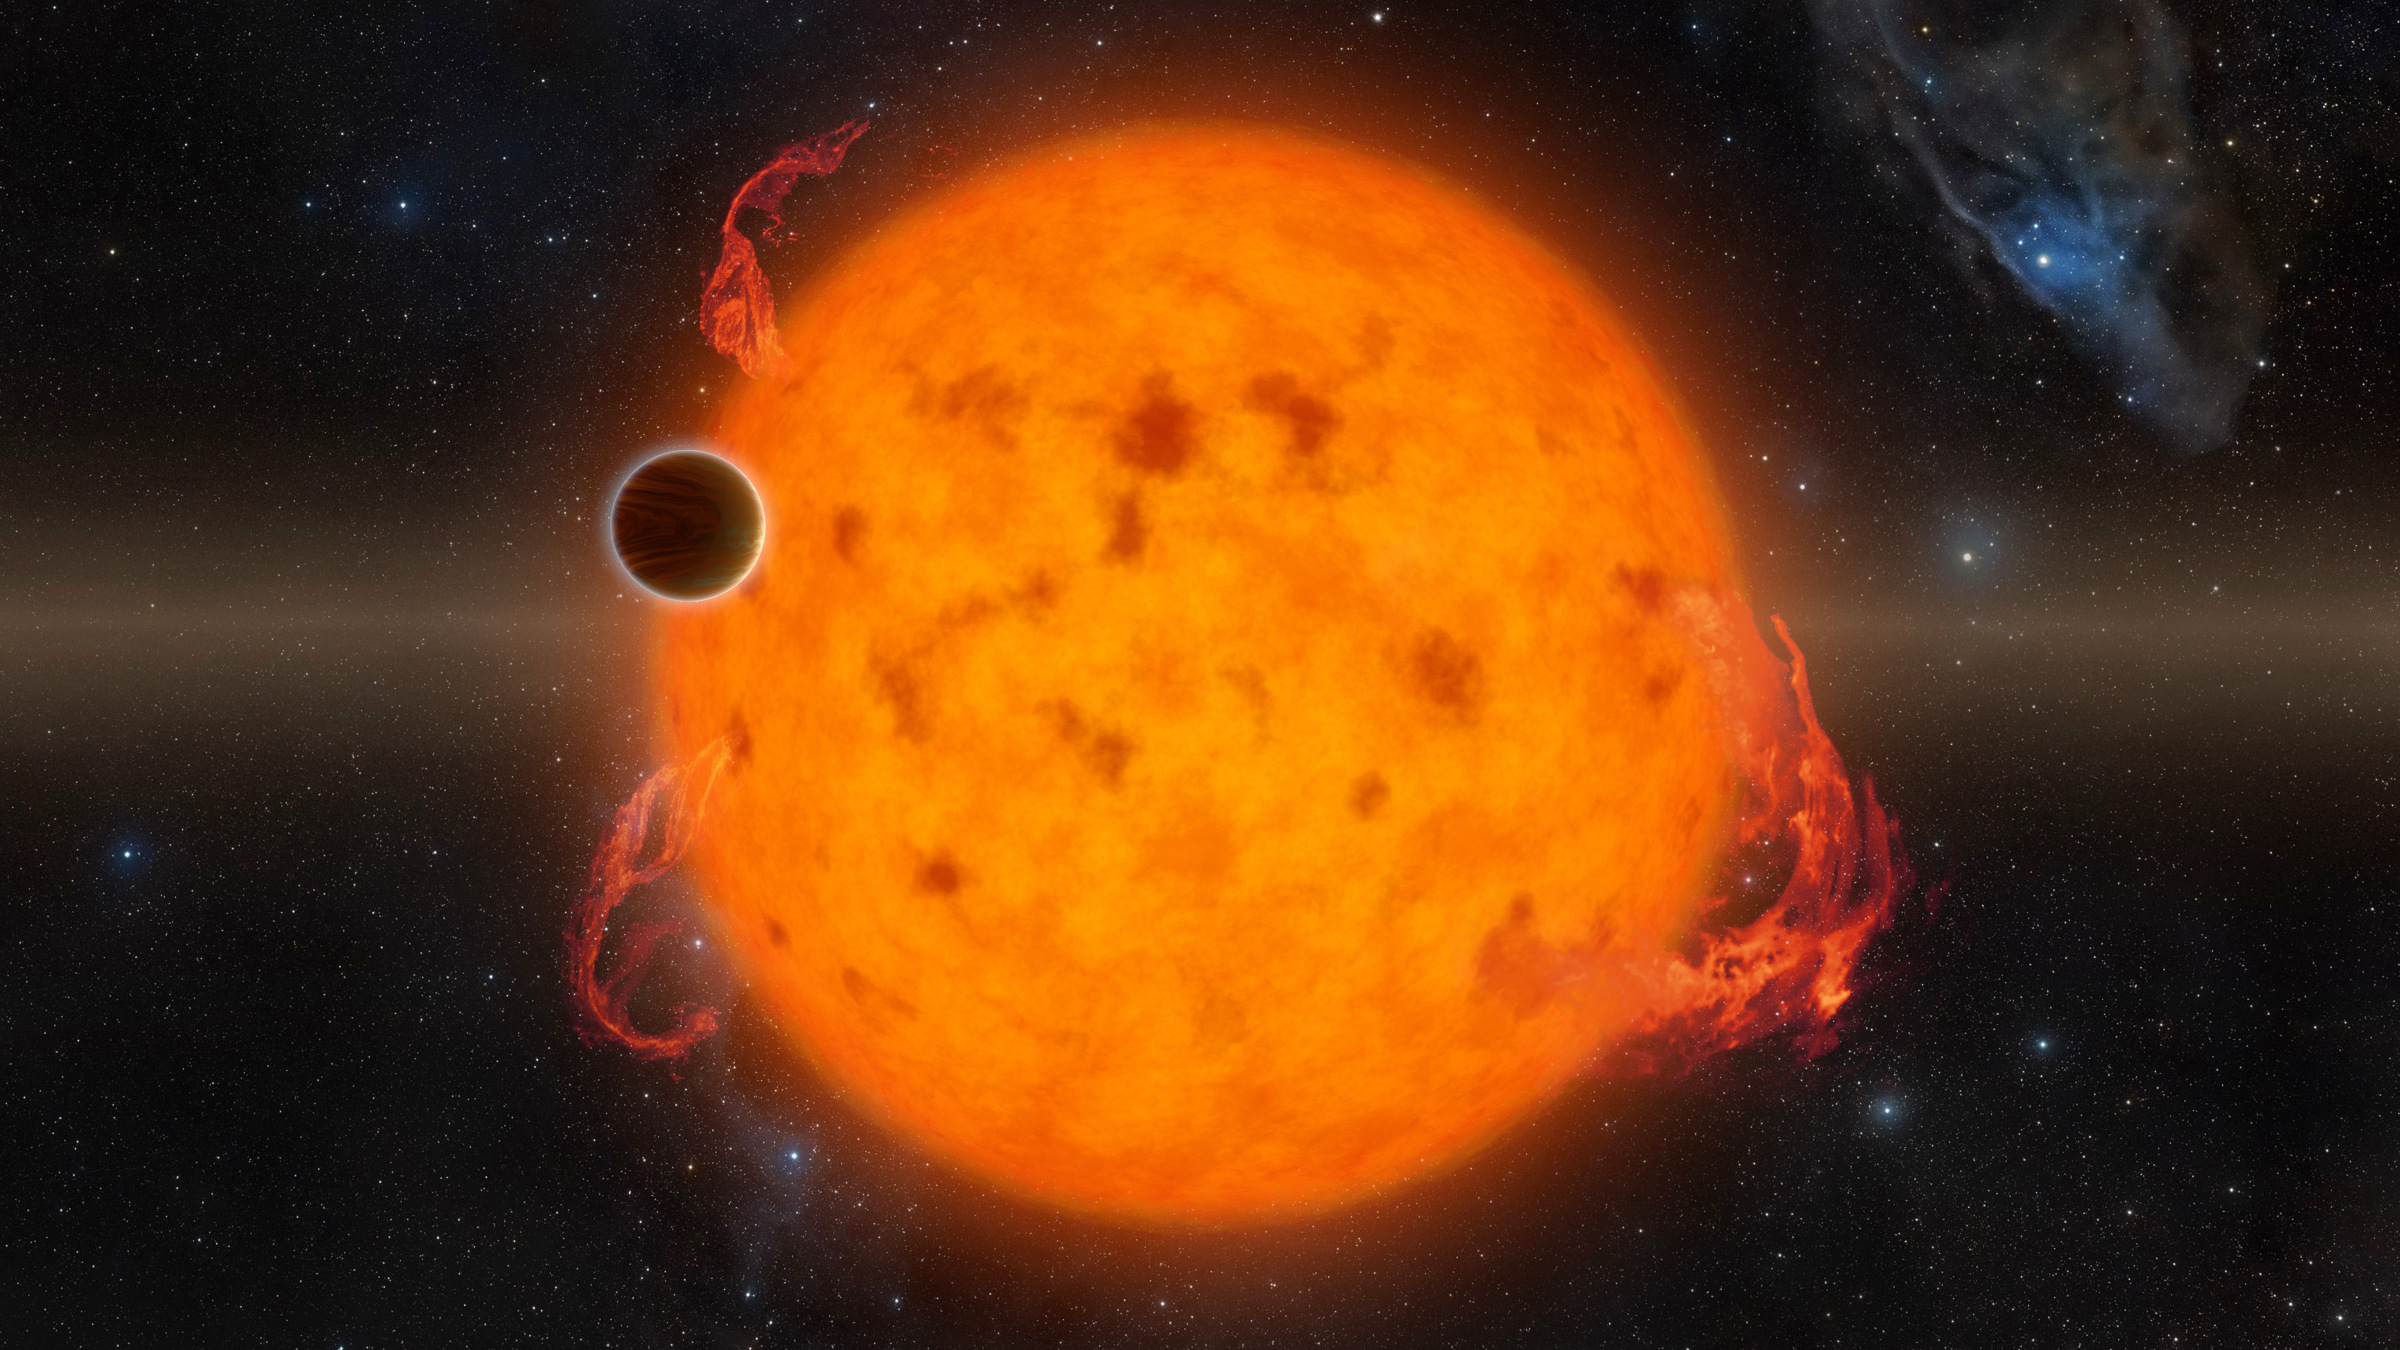 K2-33b, shown in this artist's impression, is one of the youngest exoplanets detected to date. It makes a complete orbit around its star in about five days. These two characteristics combined provide exciting new directions for planet-formation theories. K2-33b could have formed on a farther out orbit and quickly migrated inward. Alternatively, it could have formed in situ. Image credit: NASA/JPL-Caltech.